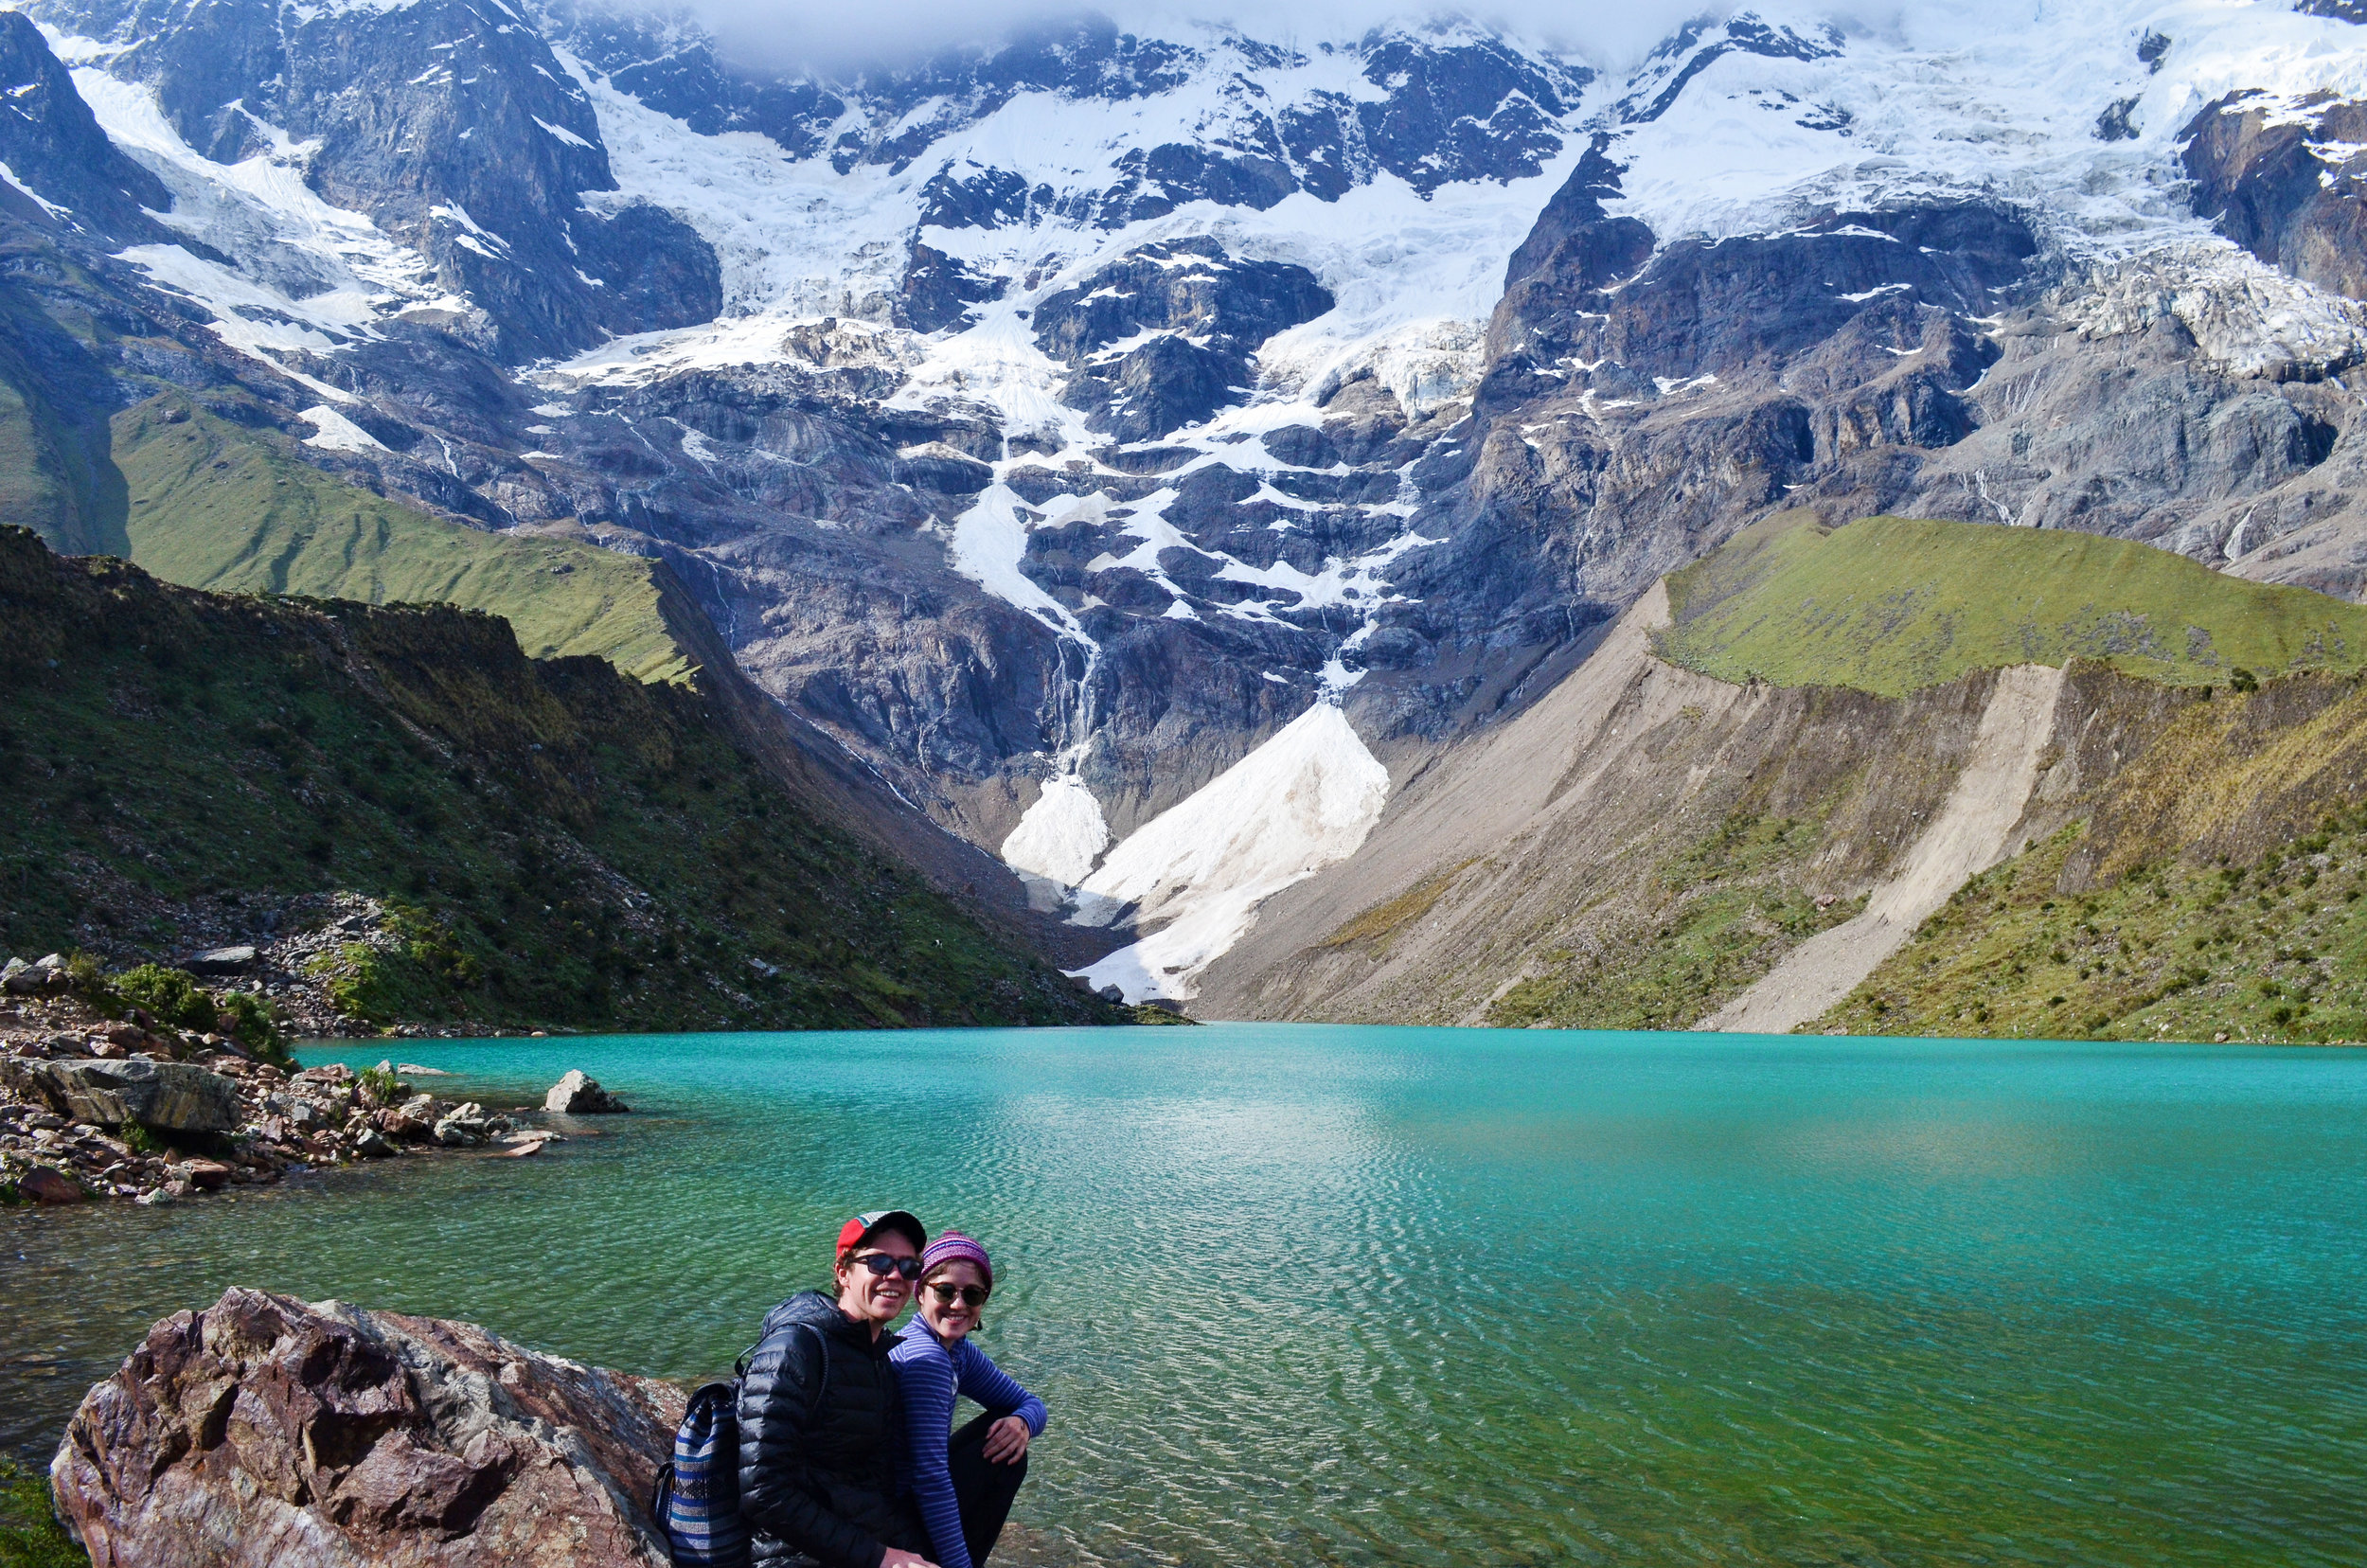 A great end to our first day of hiking the Salkantay trek: Laguna Humantay